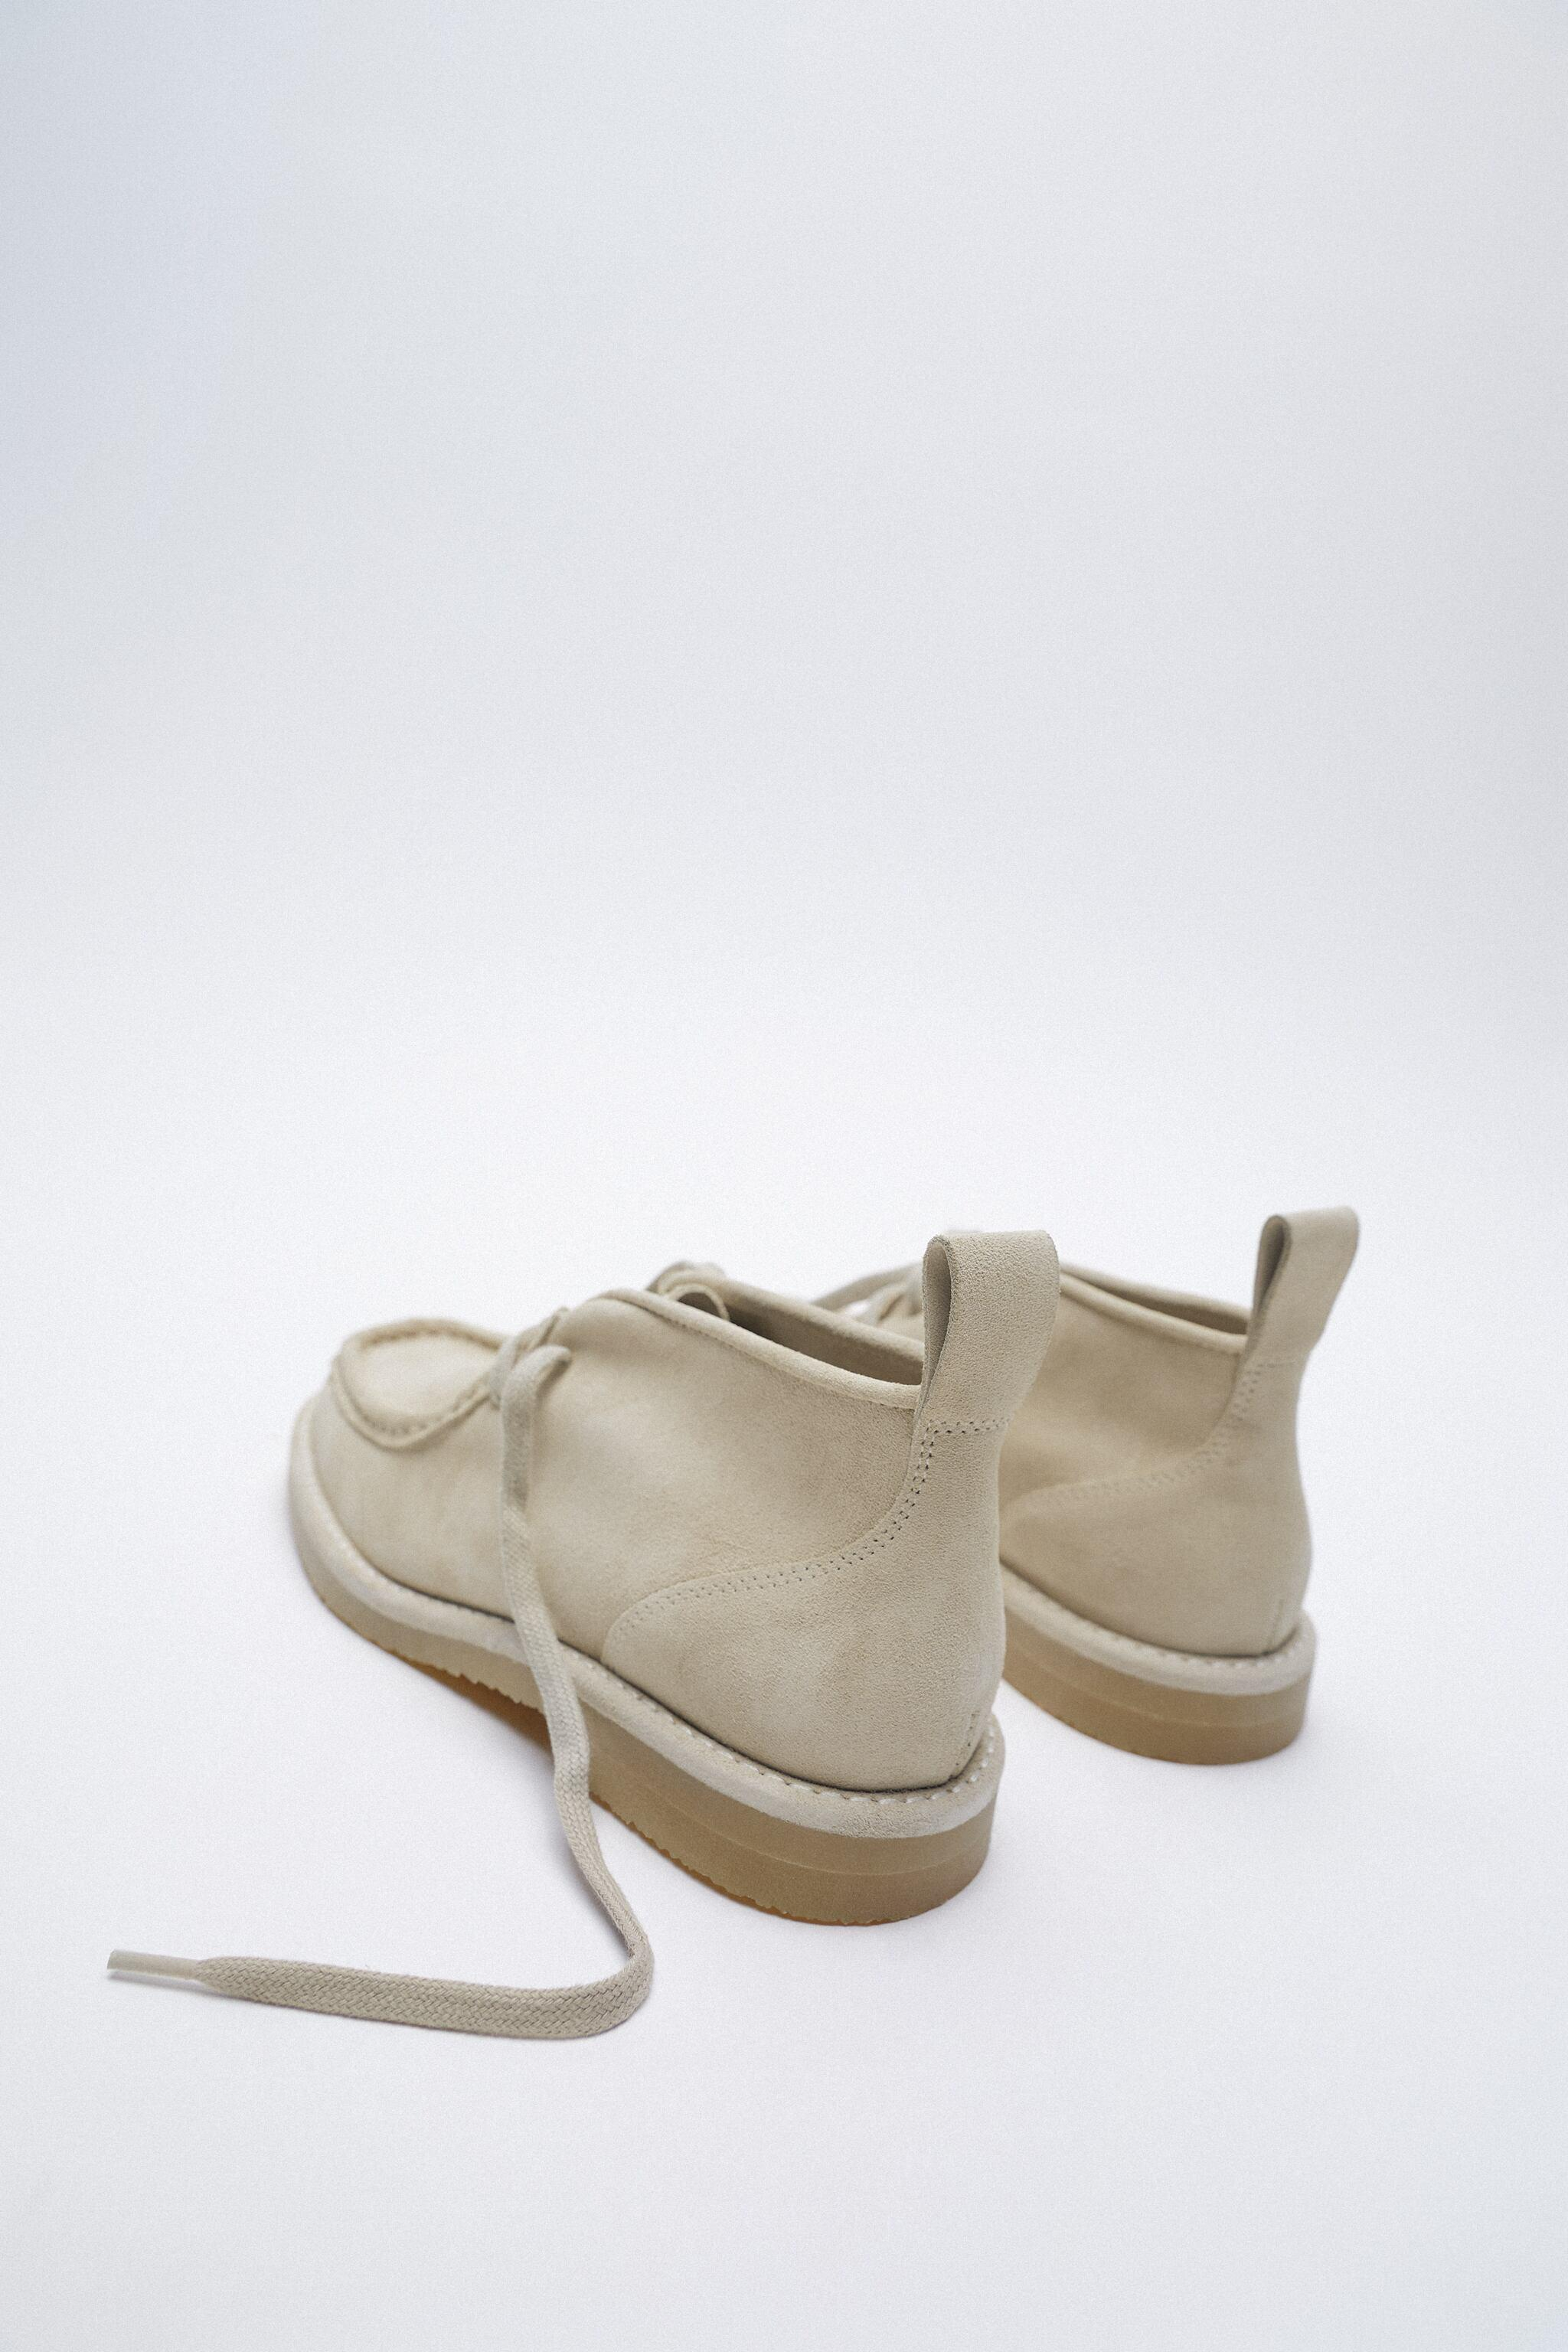 LOW HEEL SPLIT LEATHER ANKLE BOOTS 5